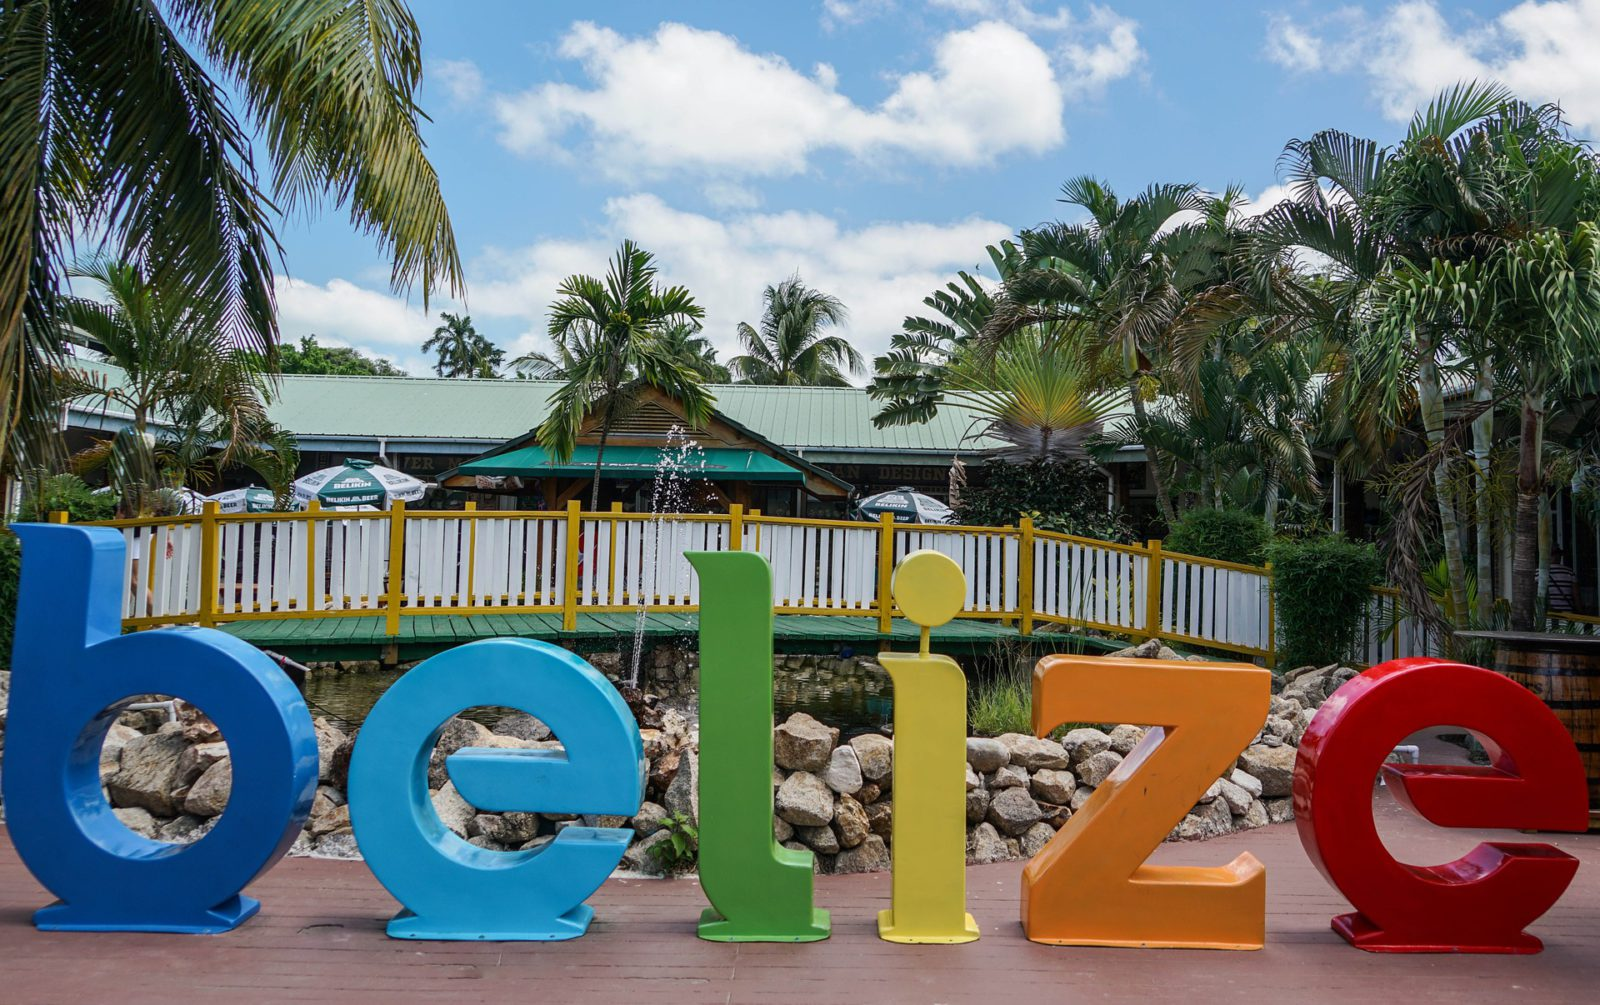 Flight Deal Round Trip From Los Angeles Area to Belize #losangeles #belize #1week